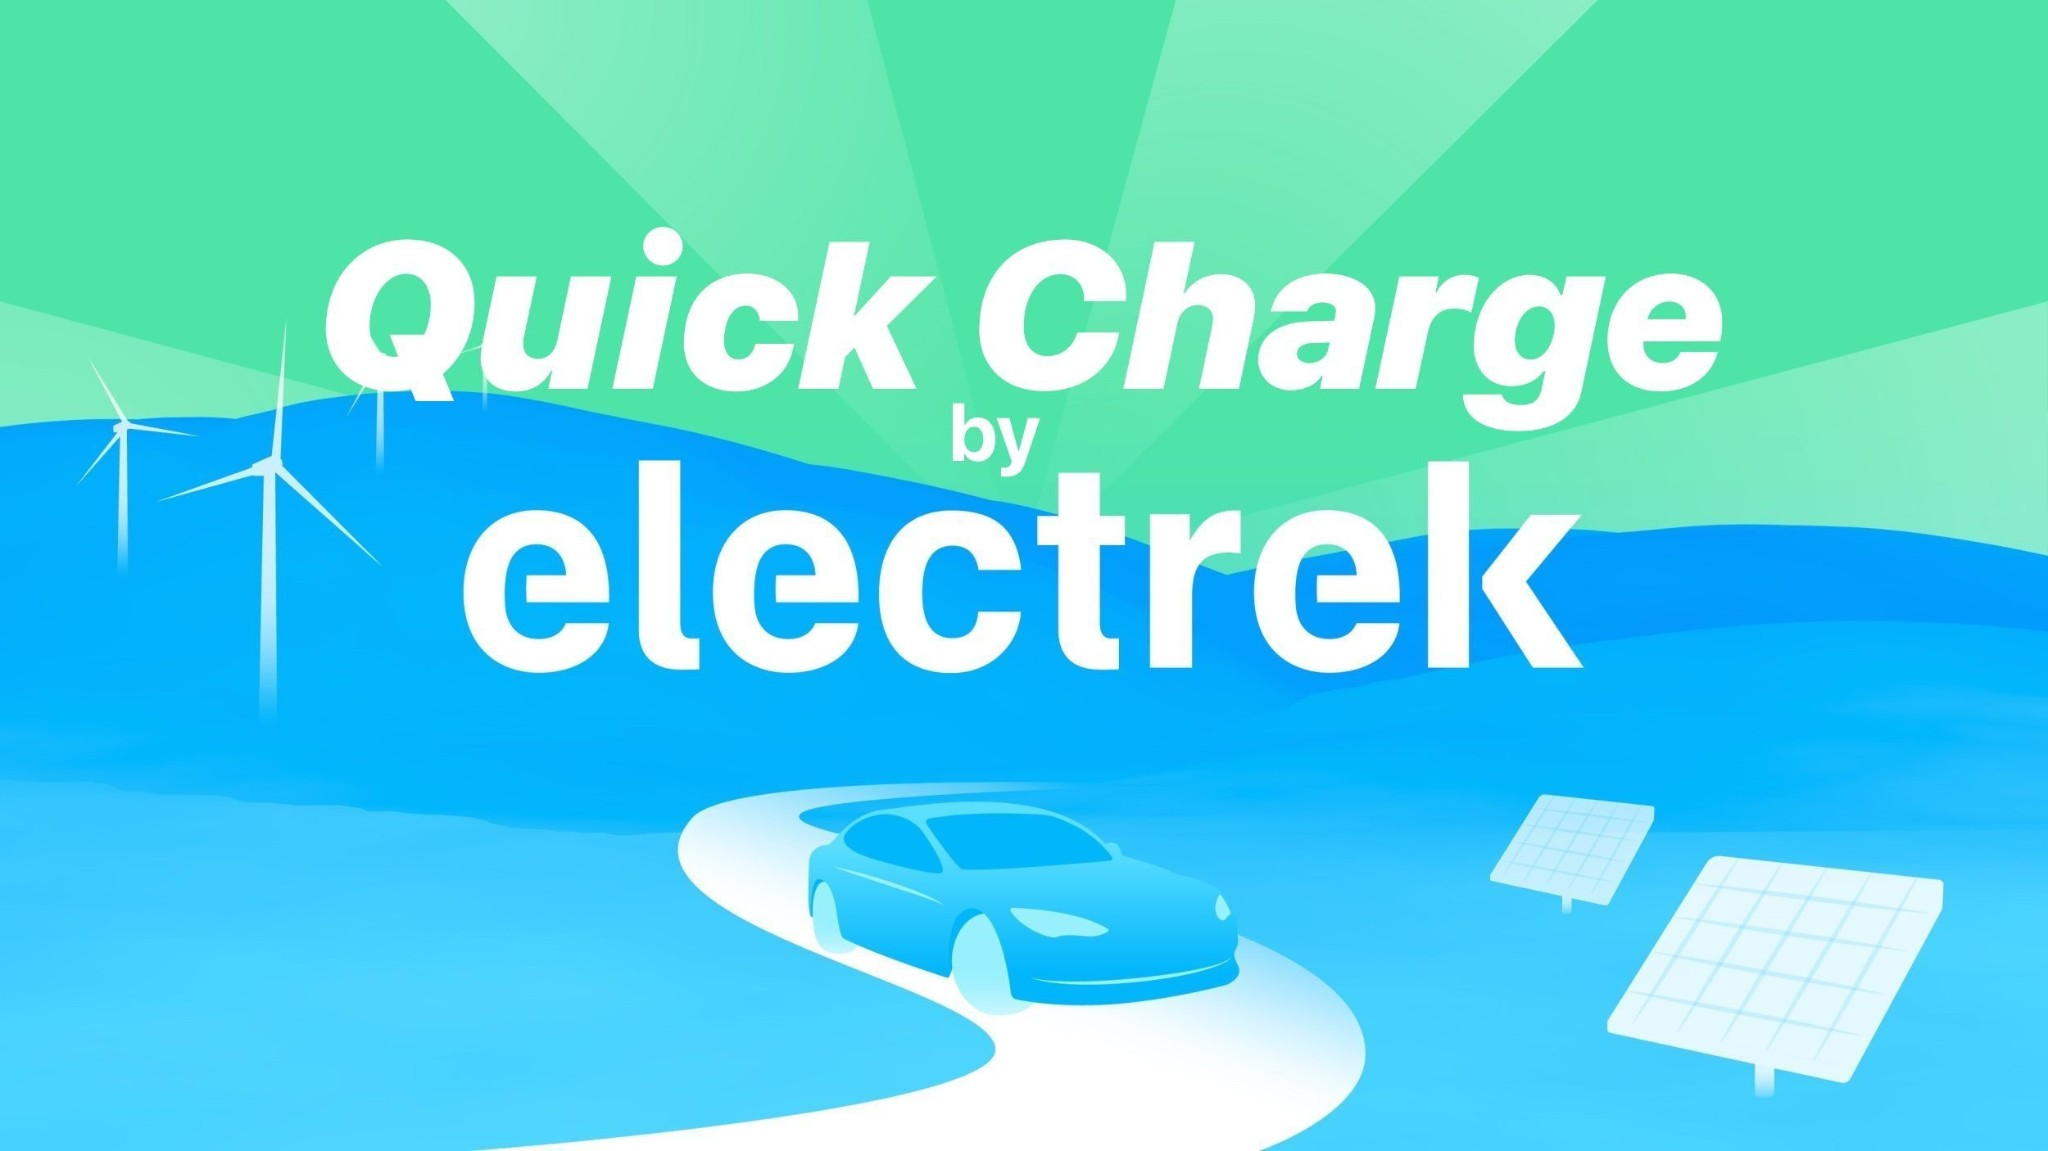 Quick Charge Podcast: October 26, 2020 - Electrek